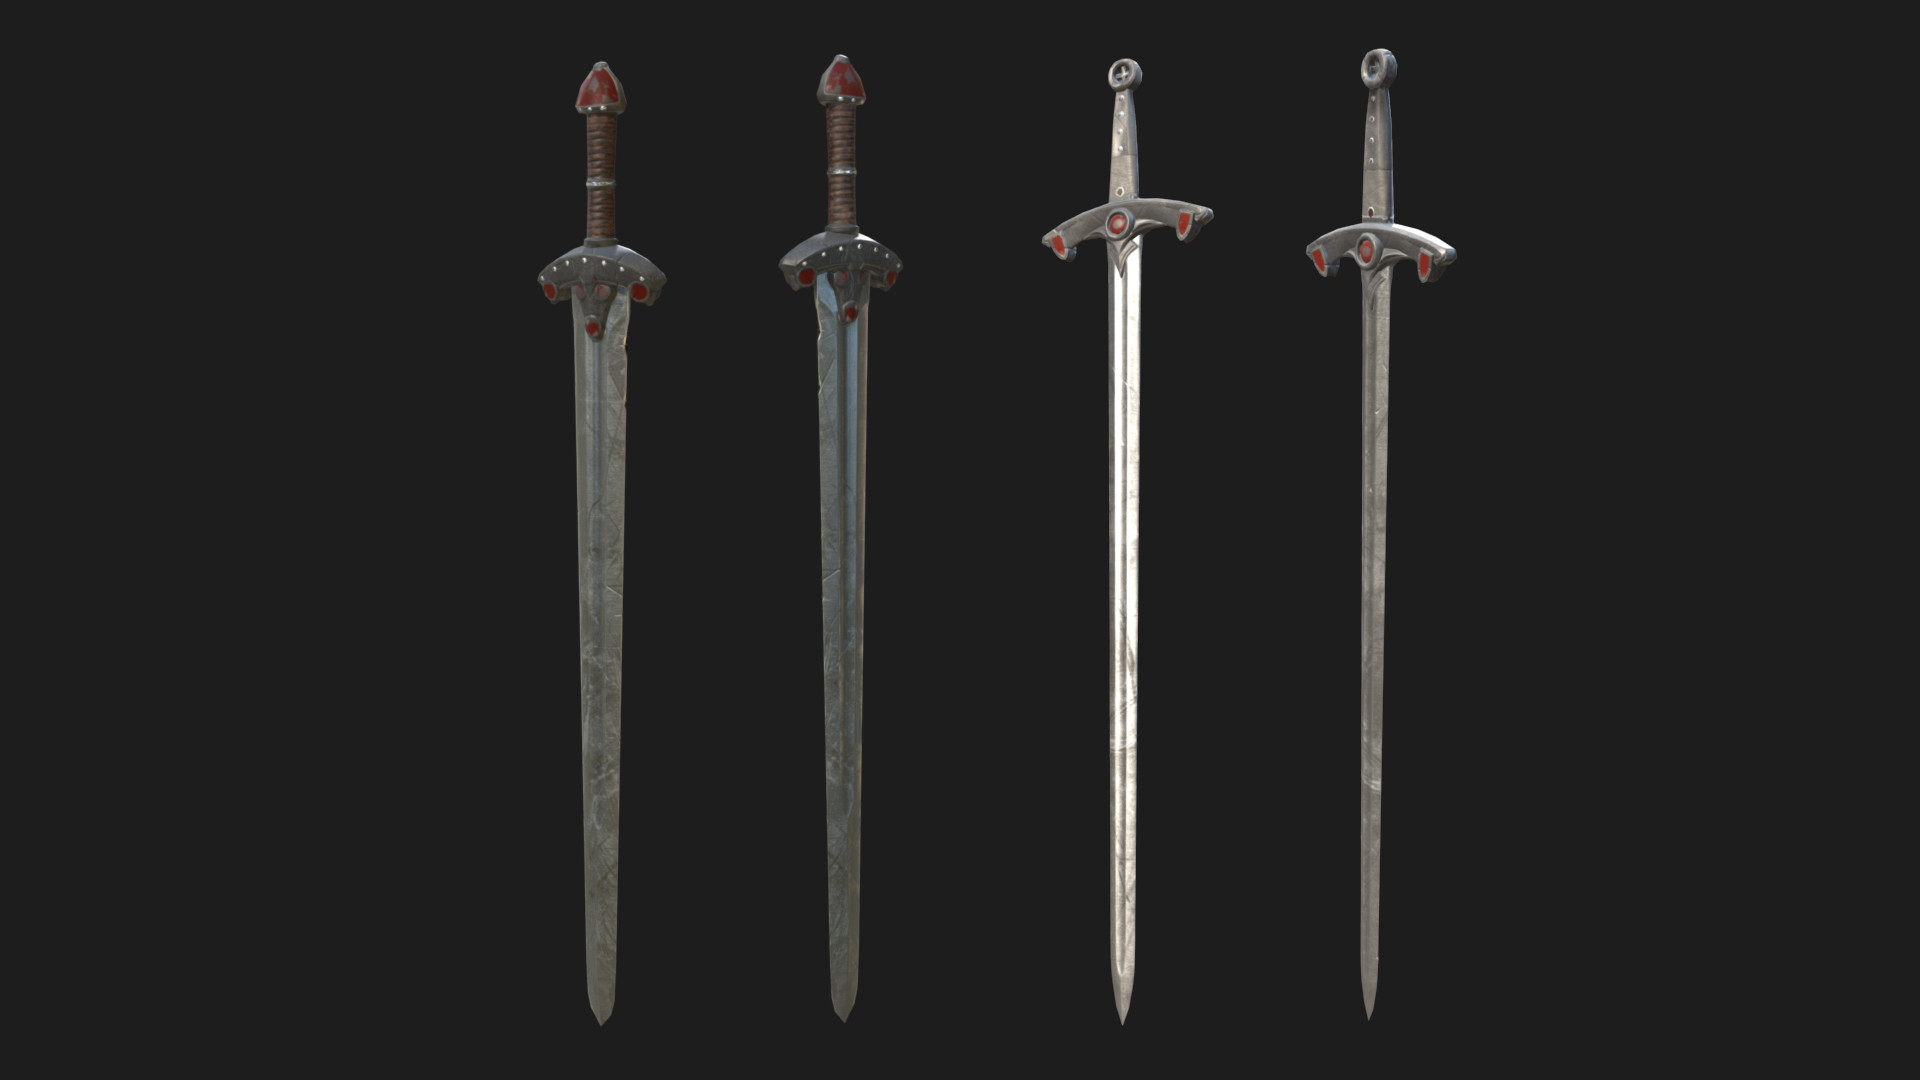 sword texture id's for auto duels - HD1920×1080